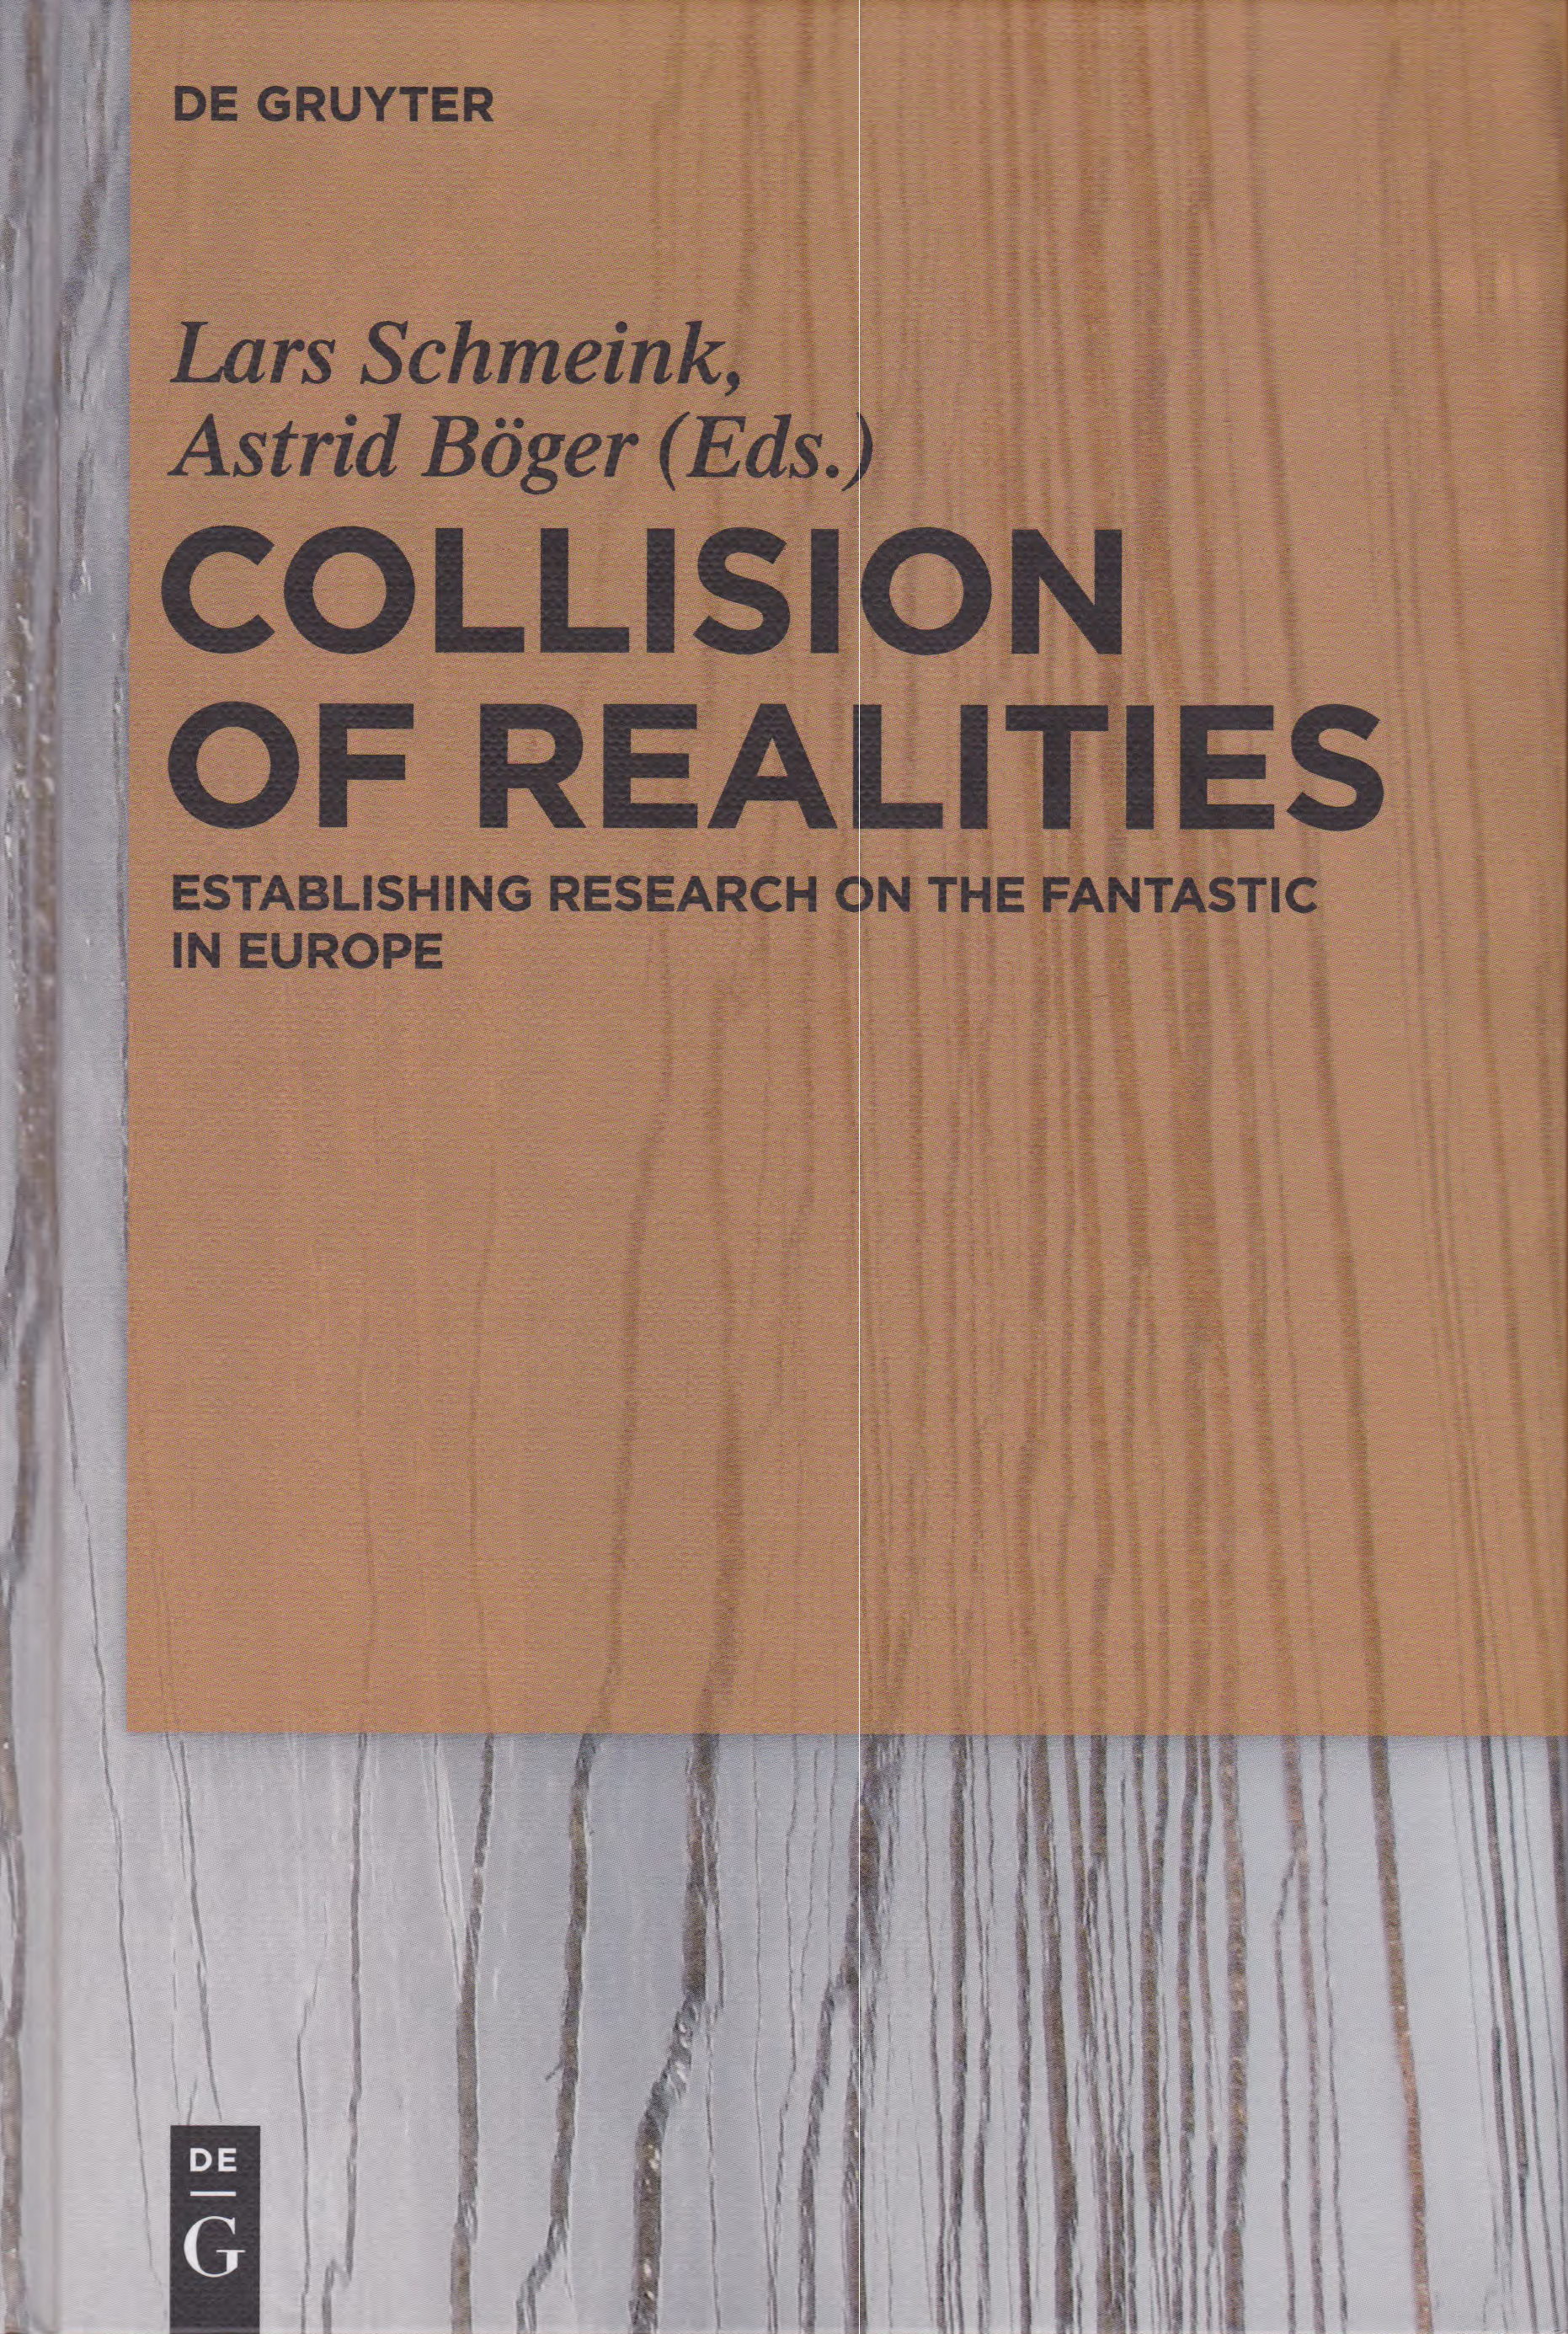 Collision of Realities: Establishing Research on the Fantastic in Europe